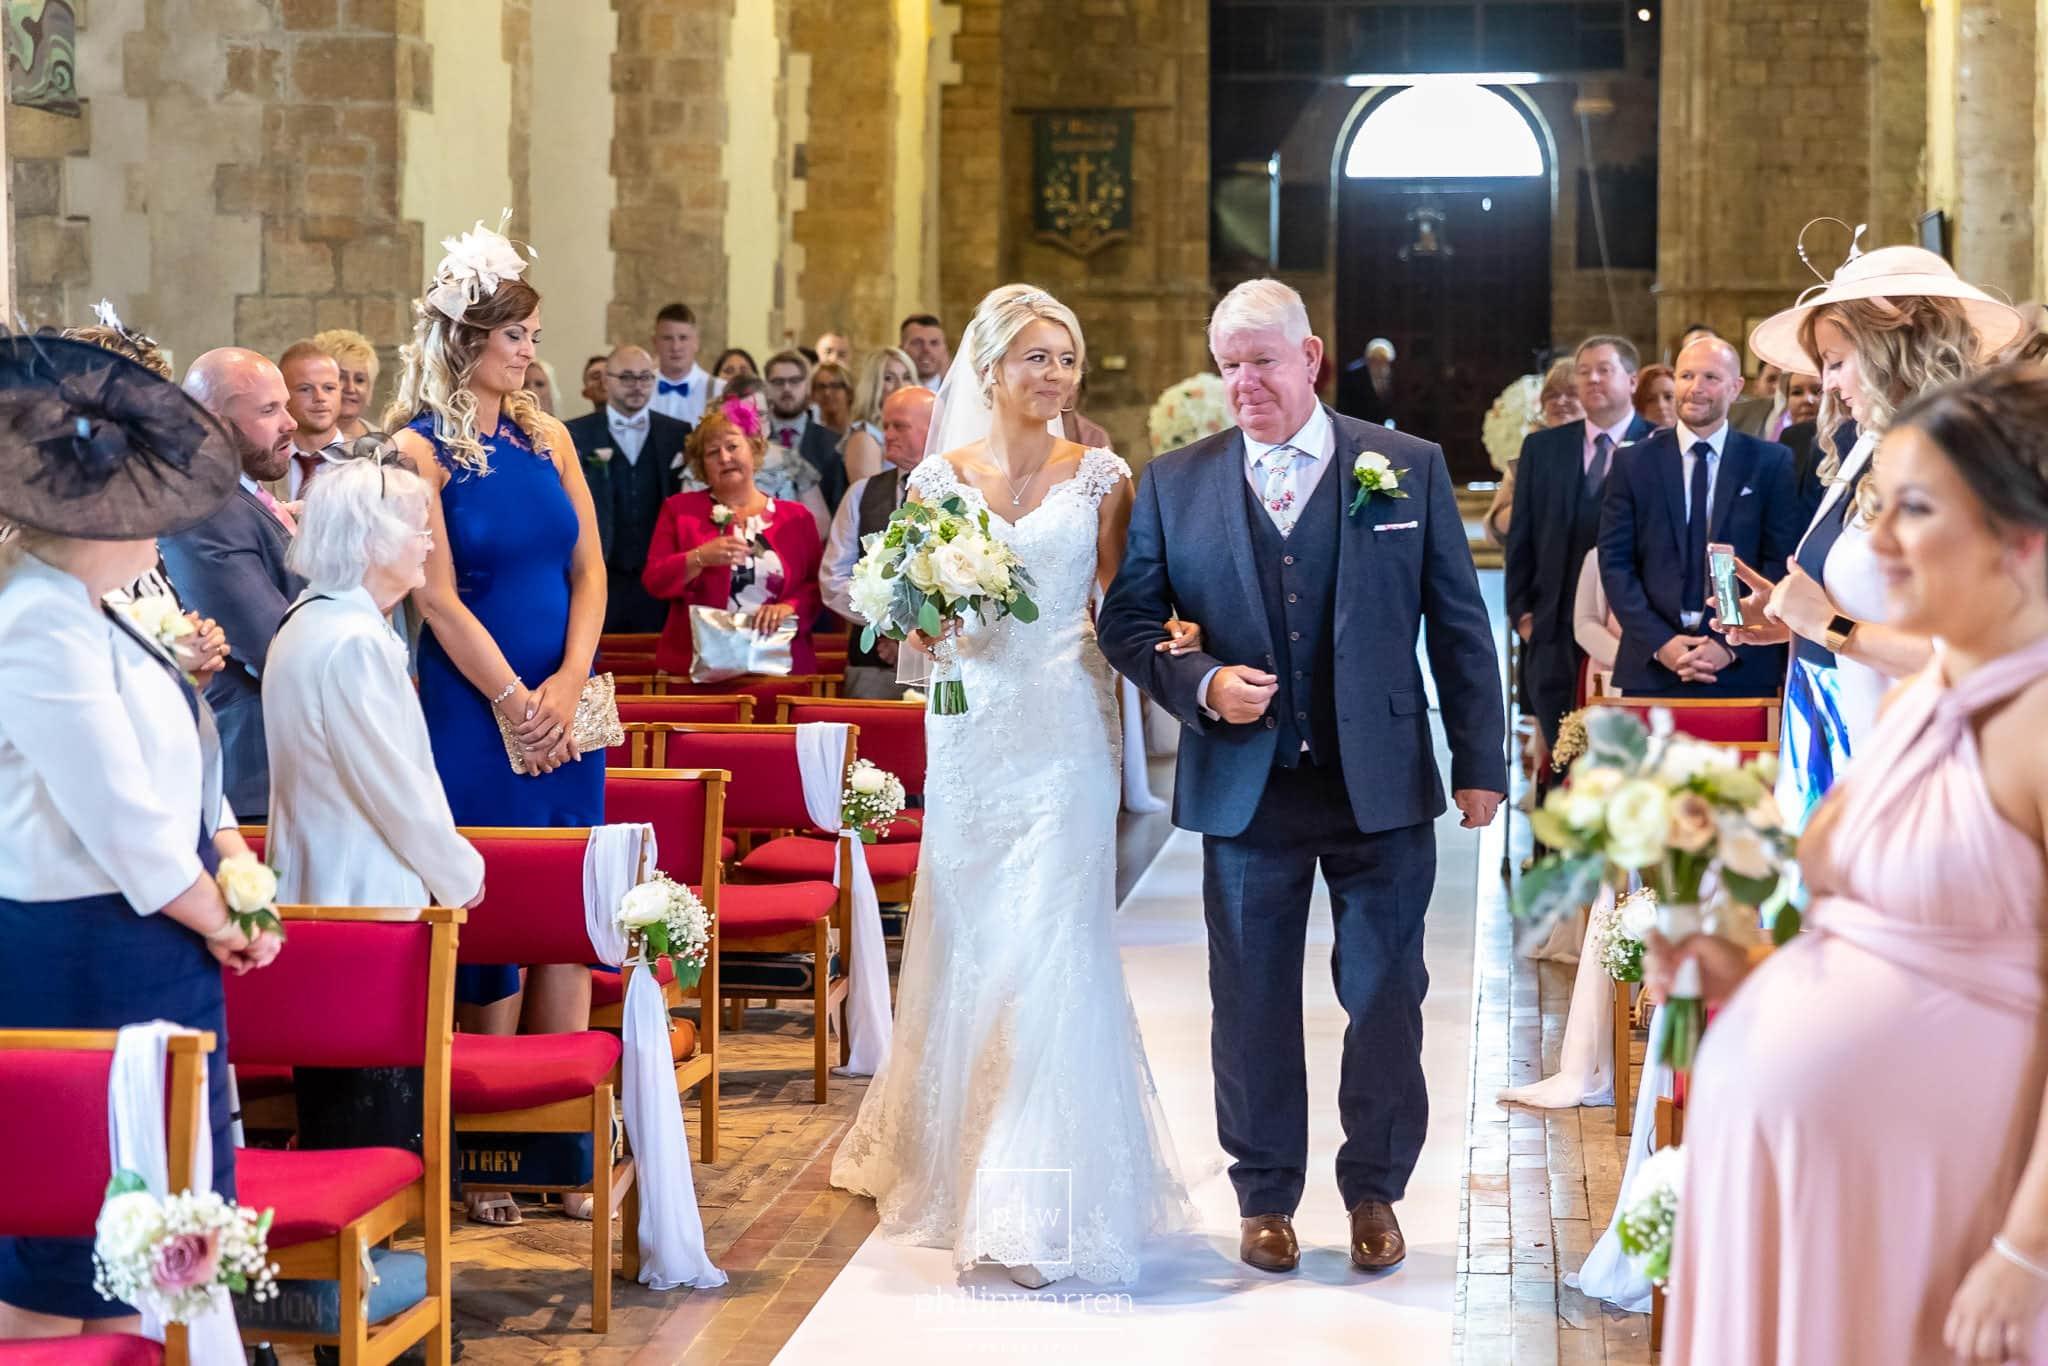 bride and her dad walking down the aisle at st marys church in chepstwo smiling with all the guests standing around them